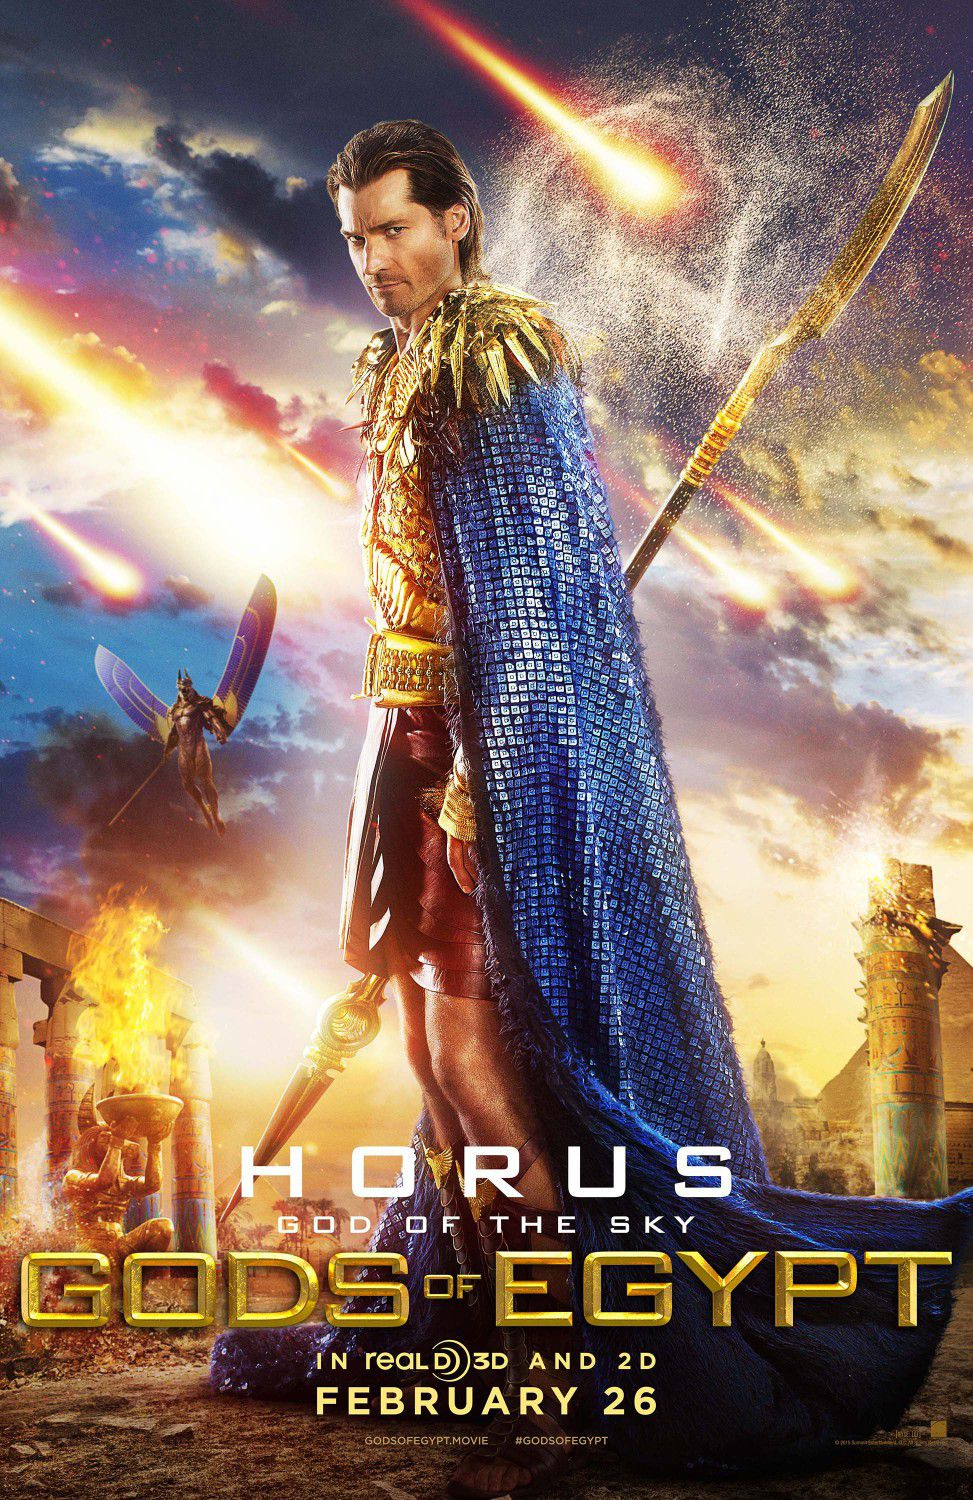 Nikolaj Coster-Waldau as Horus